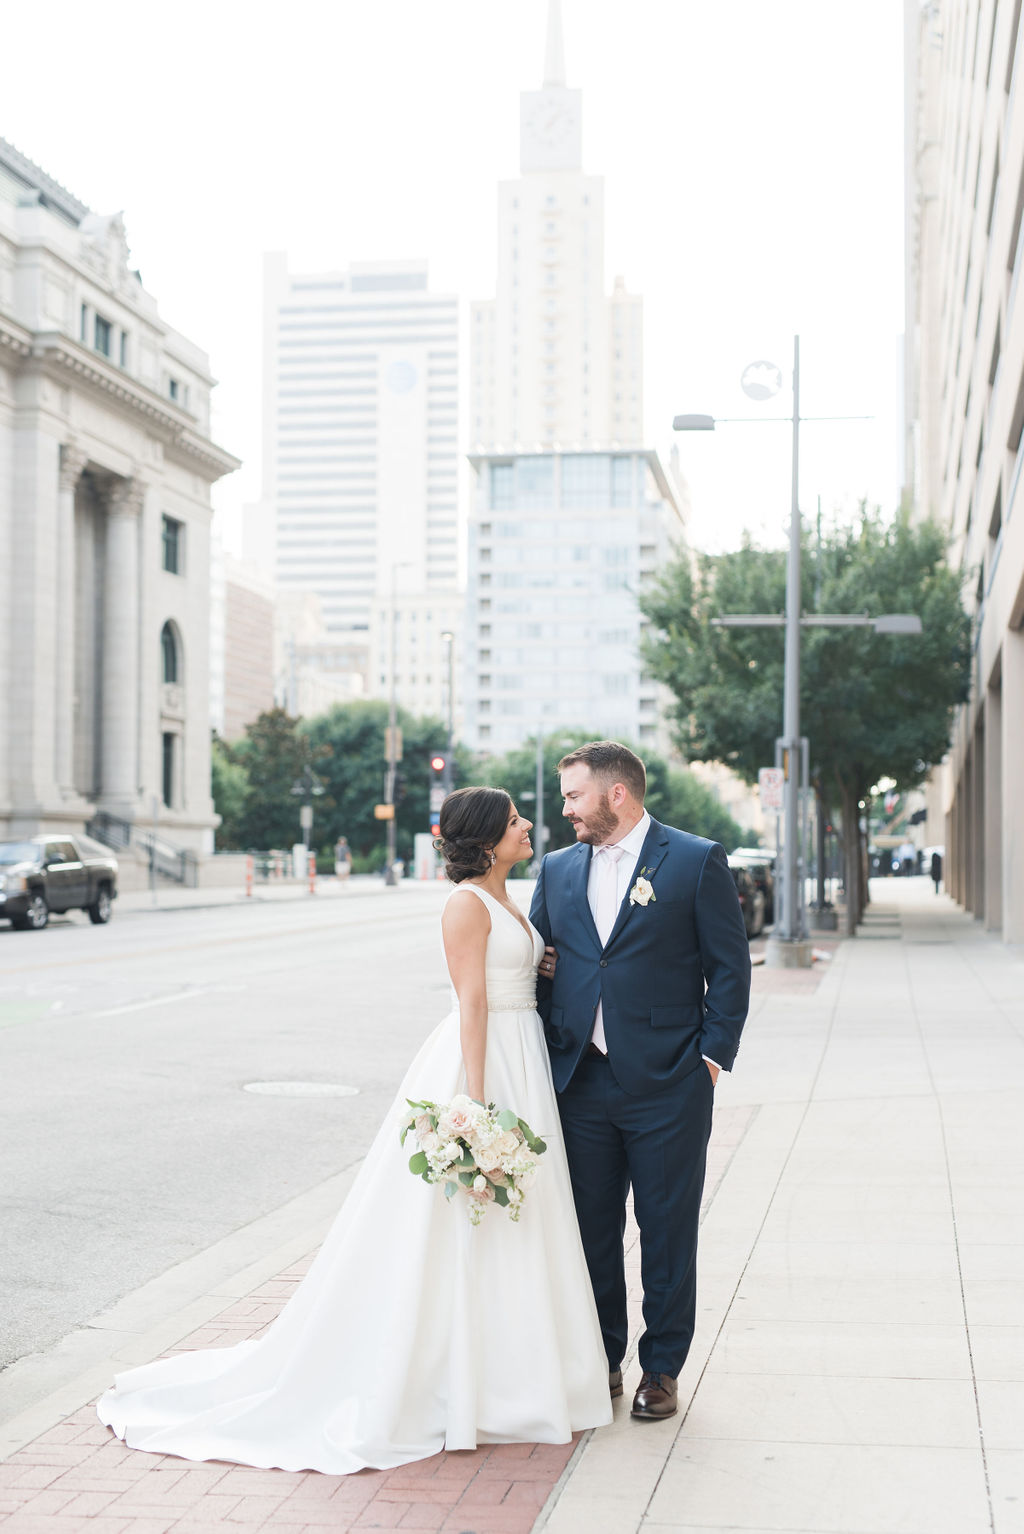 Dallas wedding photographer: Dusty Blue and Blush Wedding at The Room on Main featured on Alexa Kay Events!